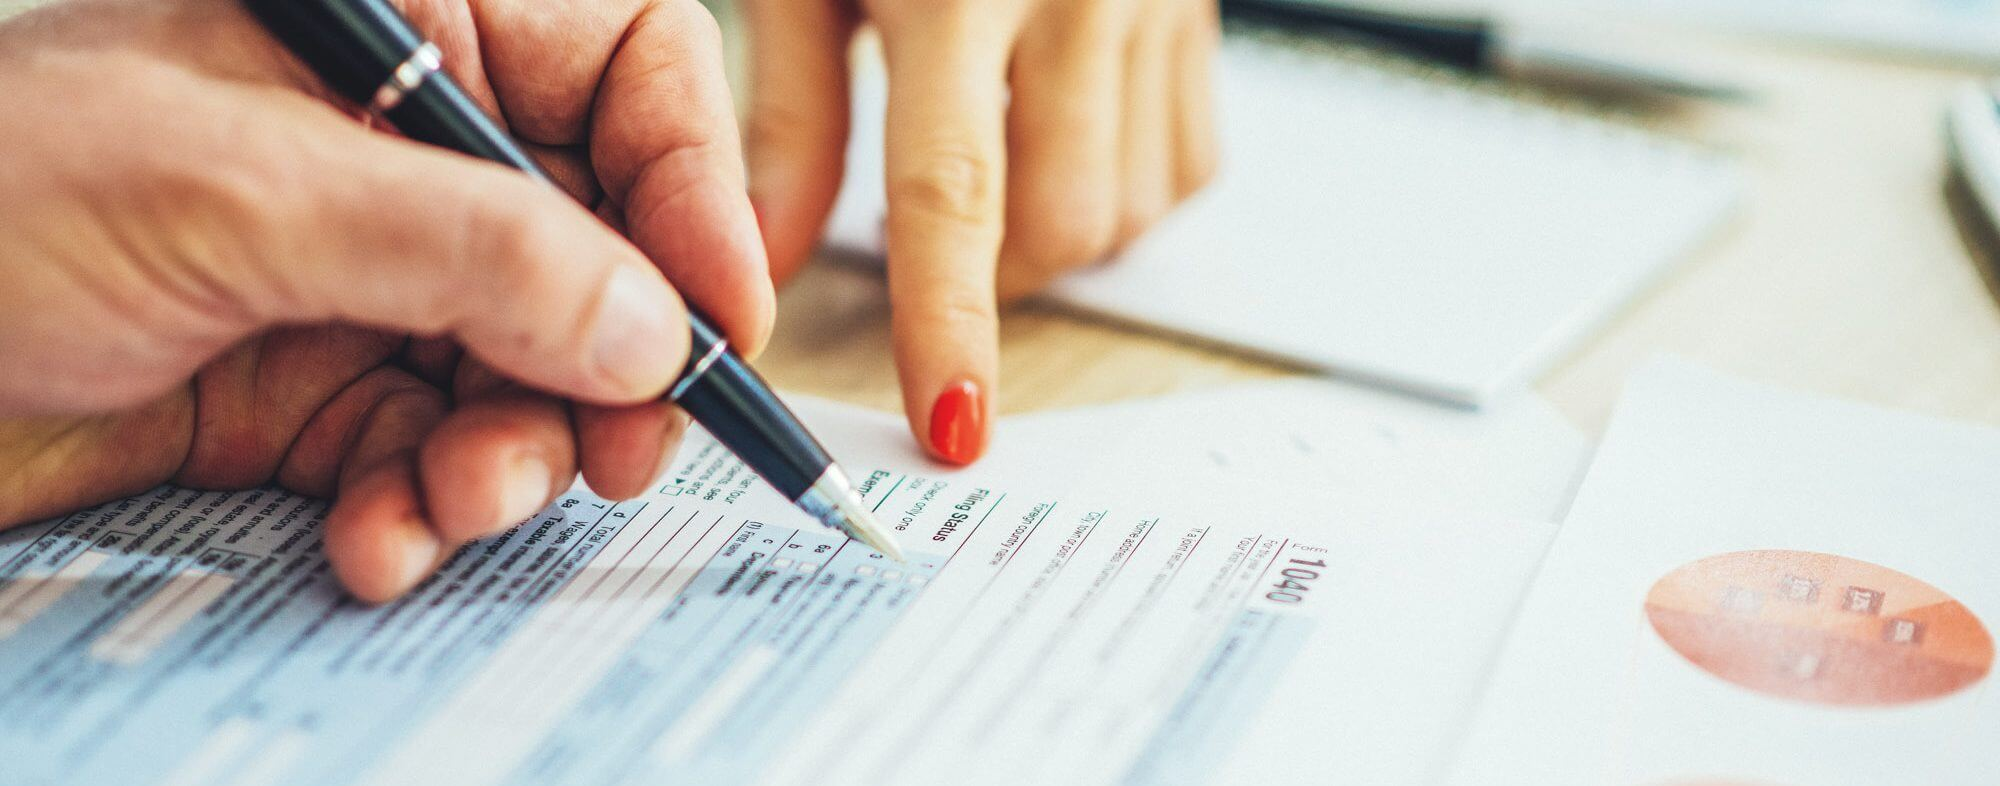 FTA's Tax Clinic: How Does This Help SMEs With Tax Compliance?